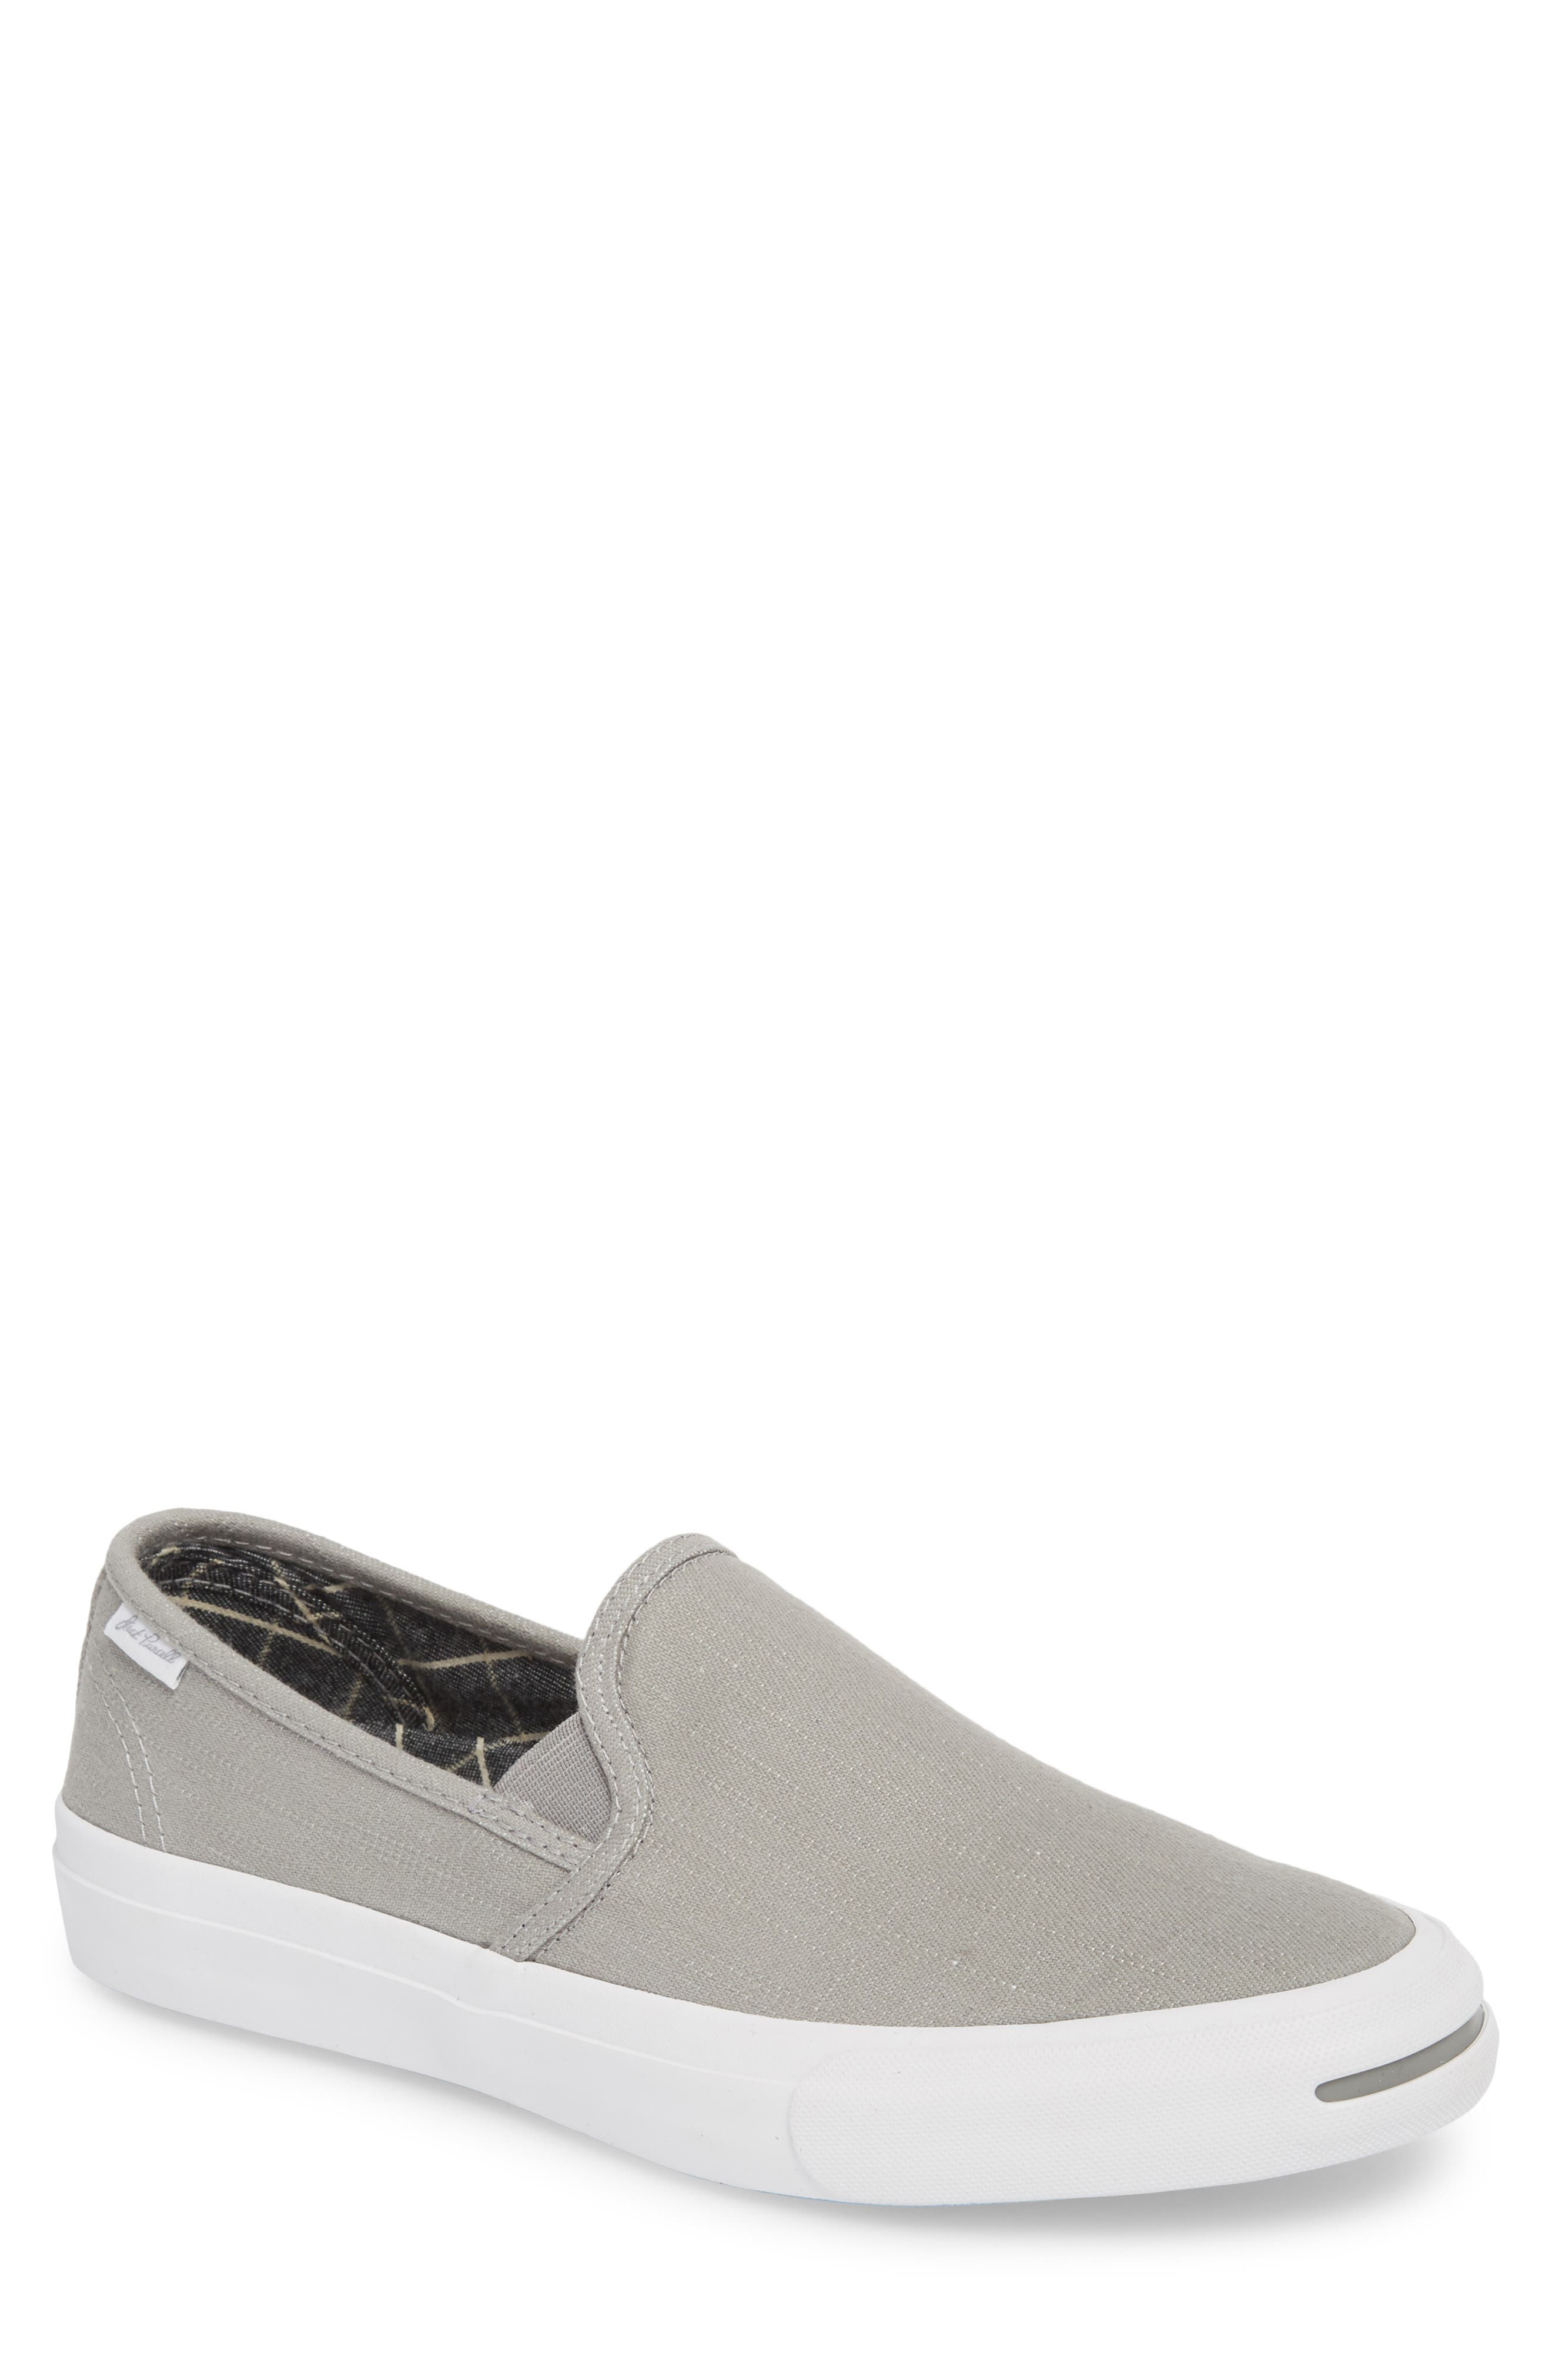 Jack Purcell Low Profile Slip-On Sneaker,                             Main thumbnail 1, color,                             020